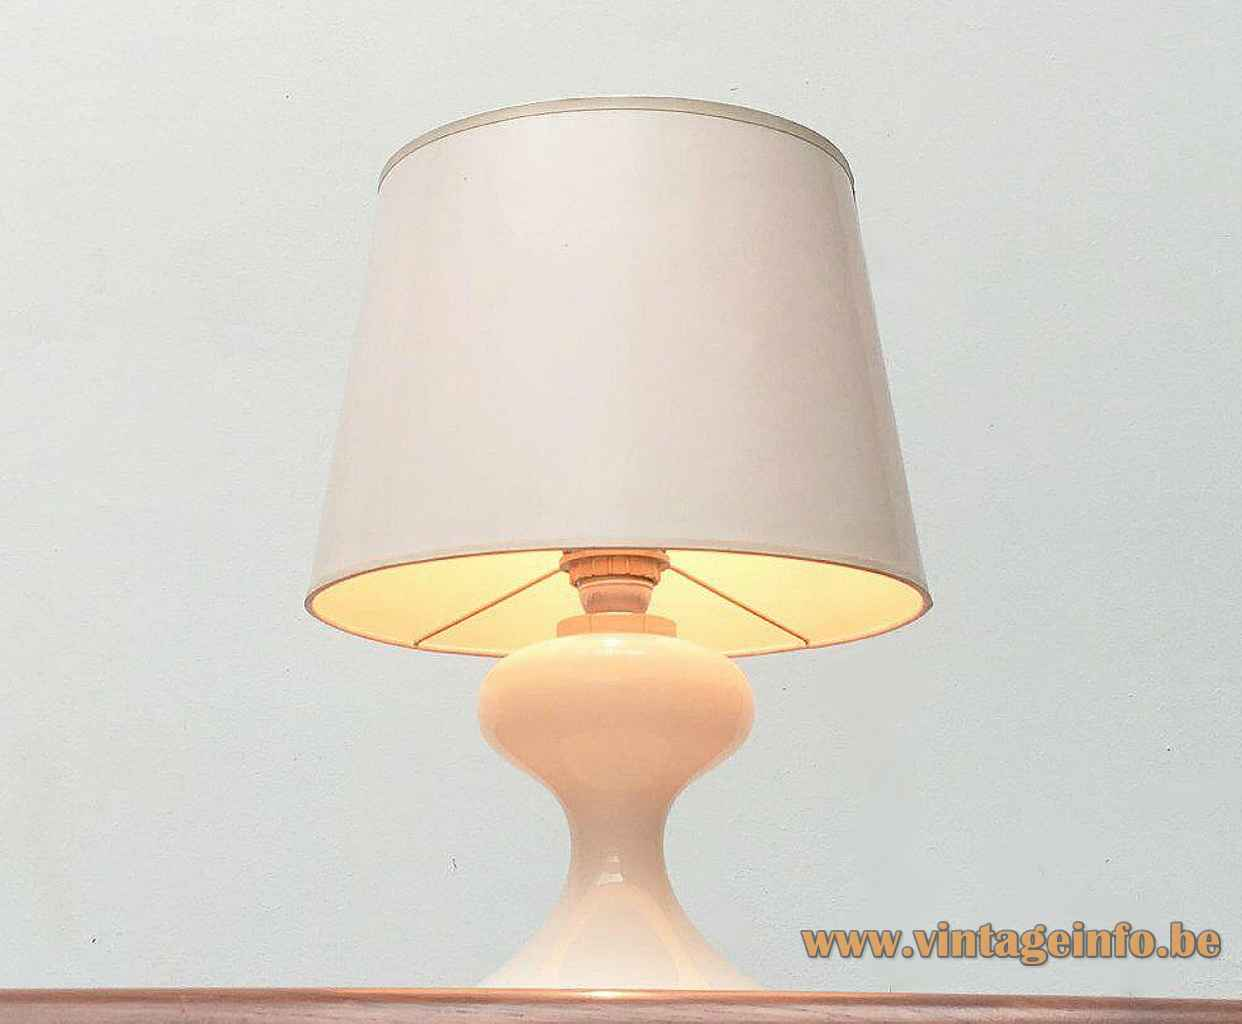 Ingo Maurer ML1 table lamp opal glass base conical fabric lampshade 1970s 1980s Design M Germany